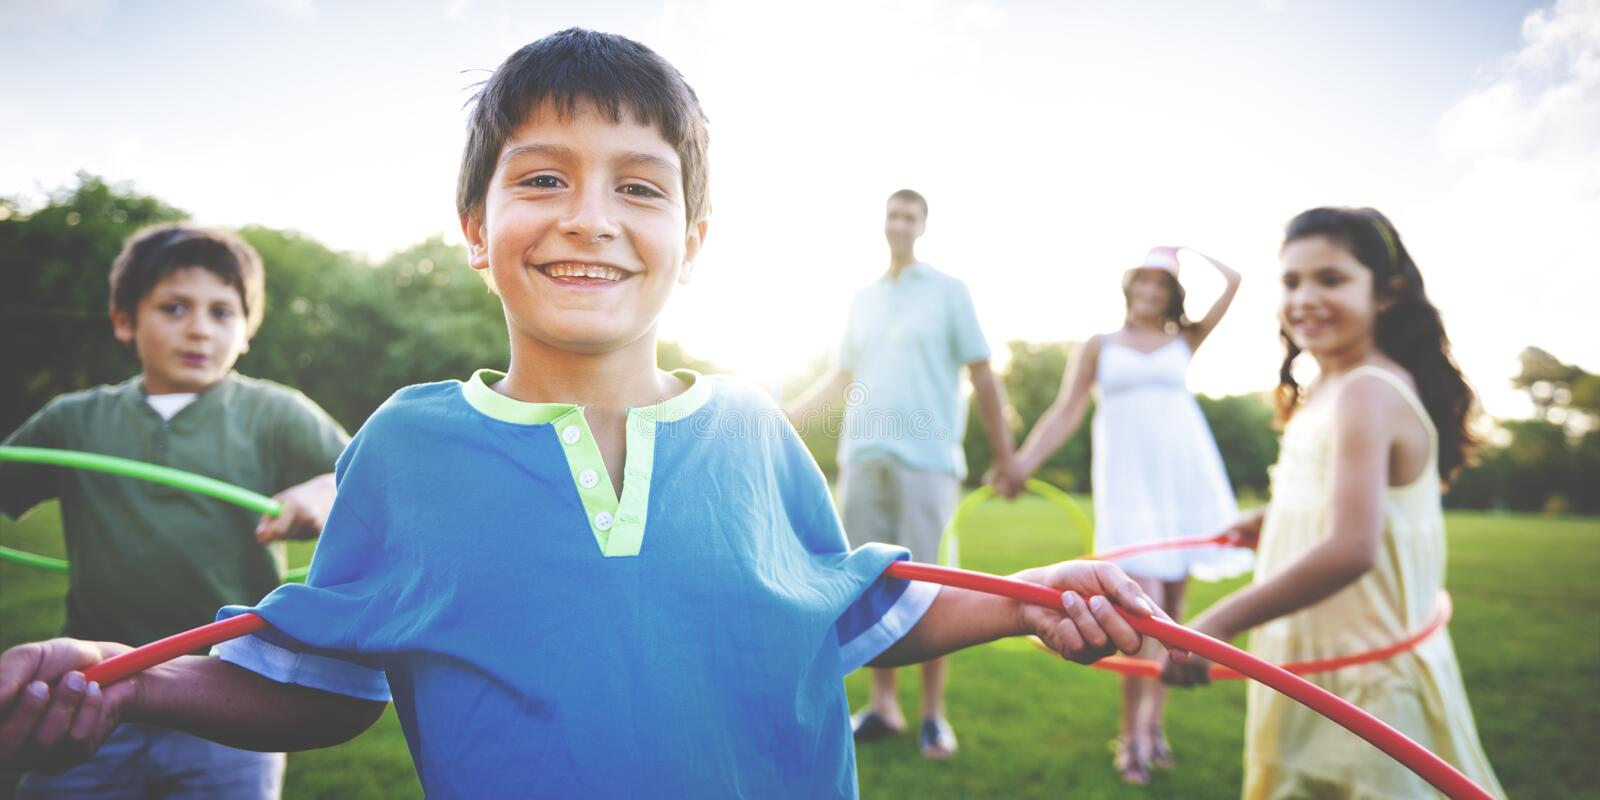 Whole Family Hula Hooping Outdoors Togetherness Concept royalty free stock image